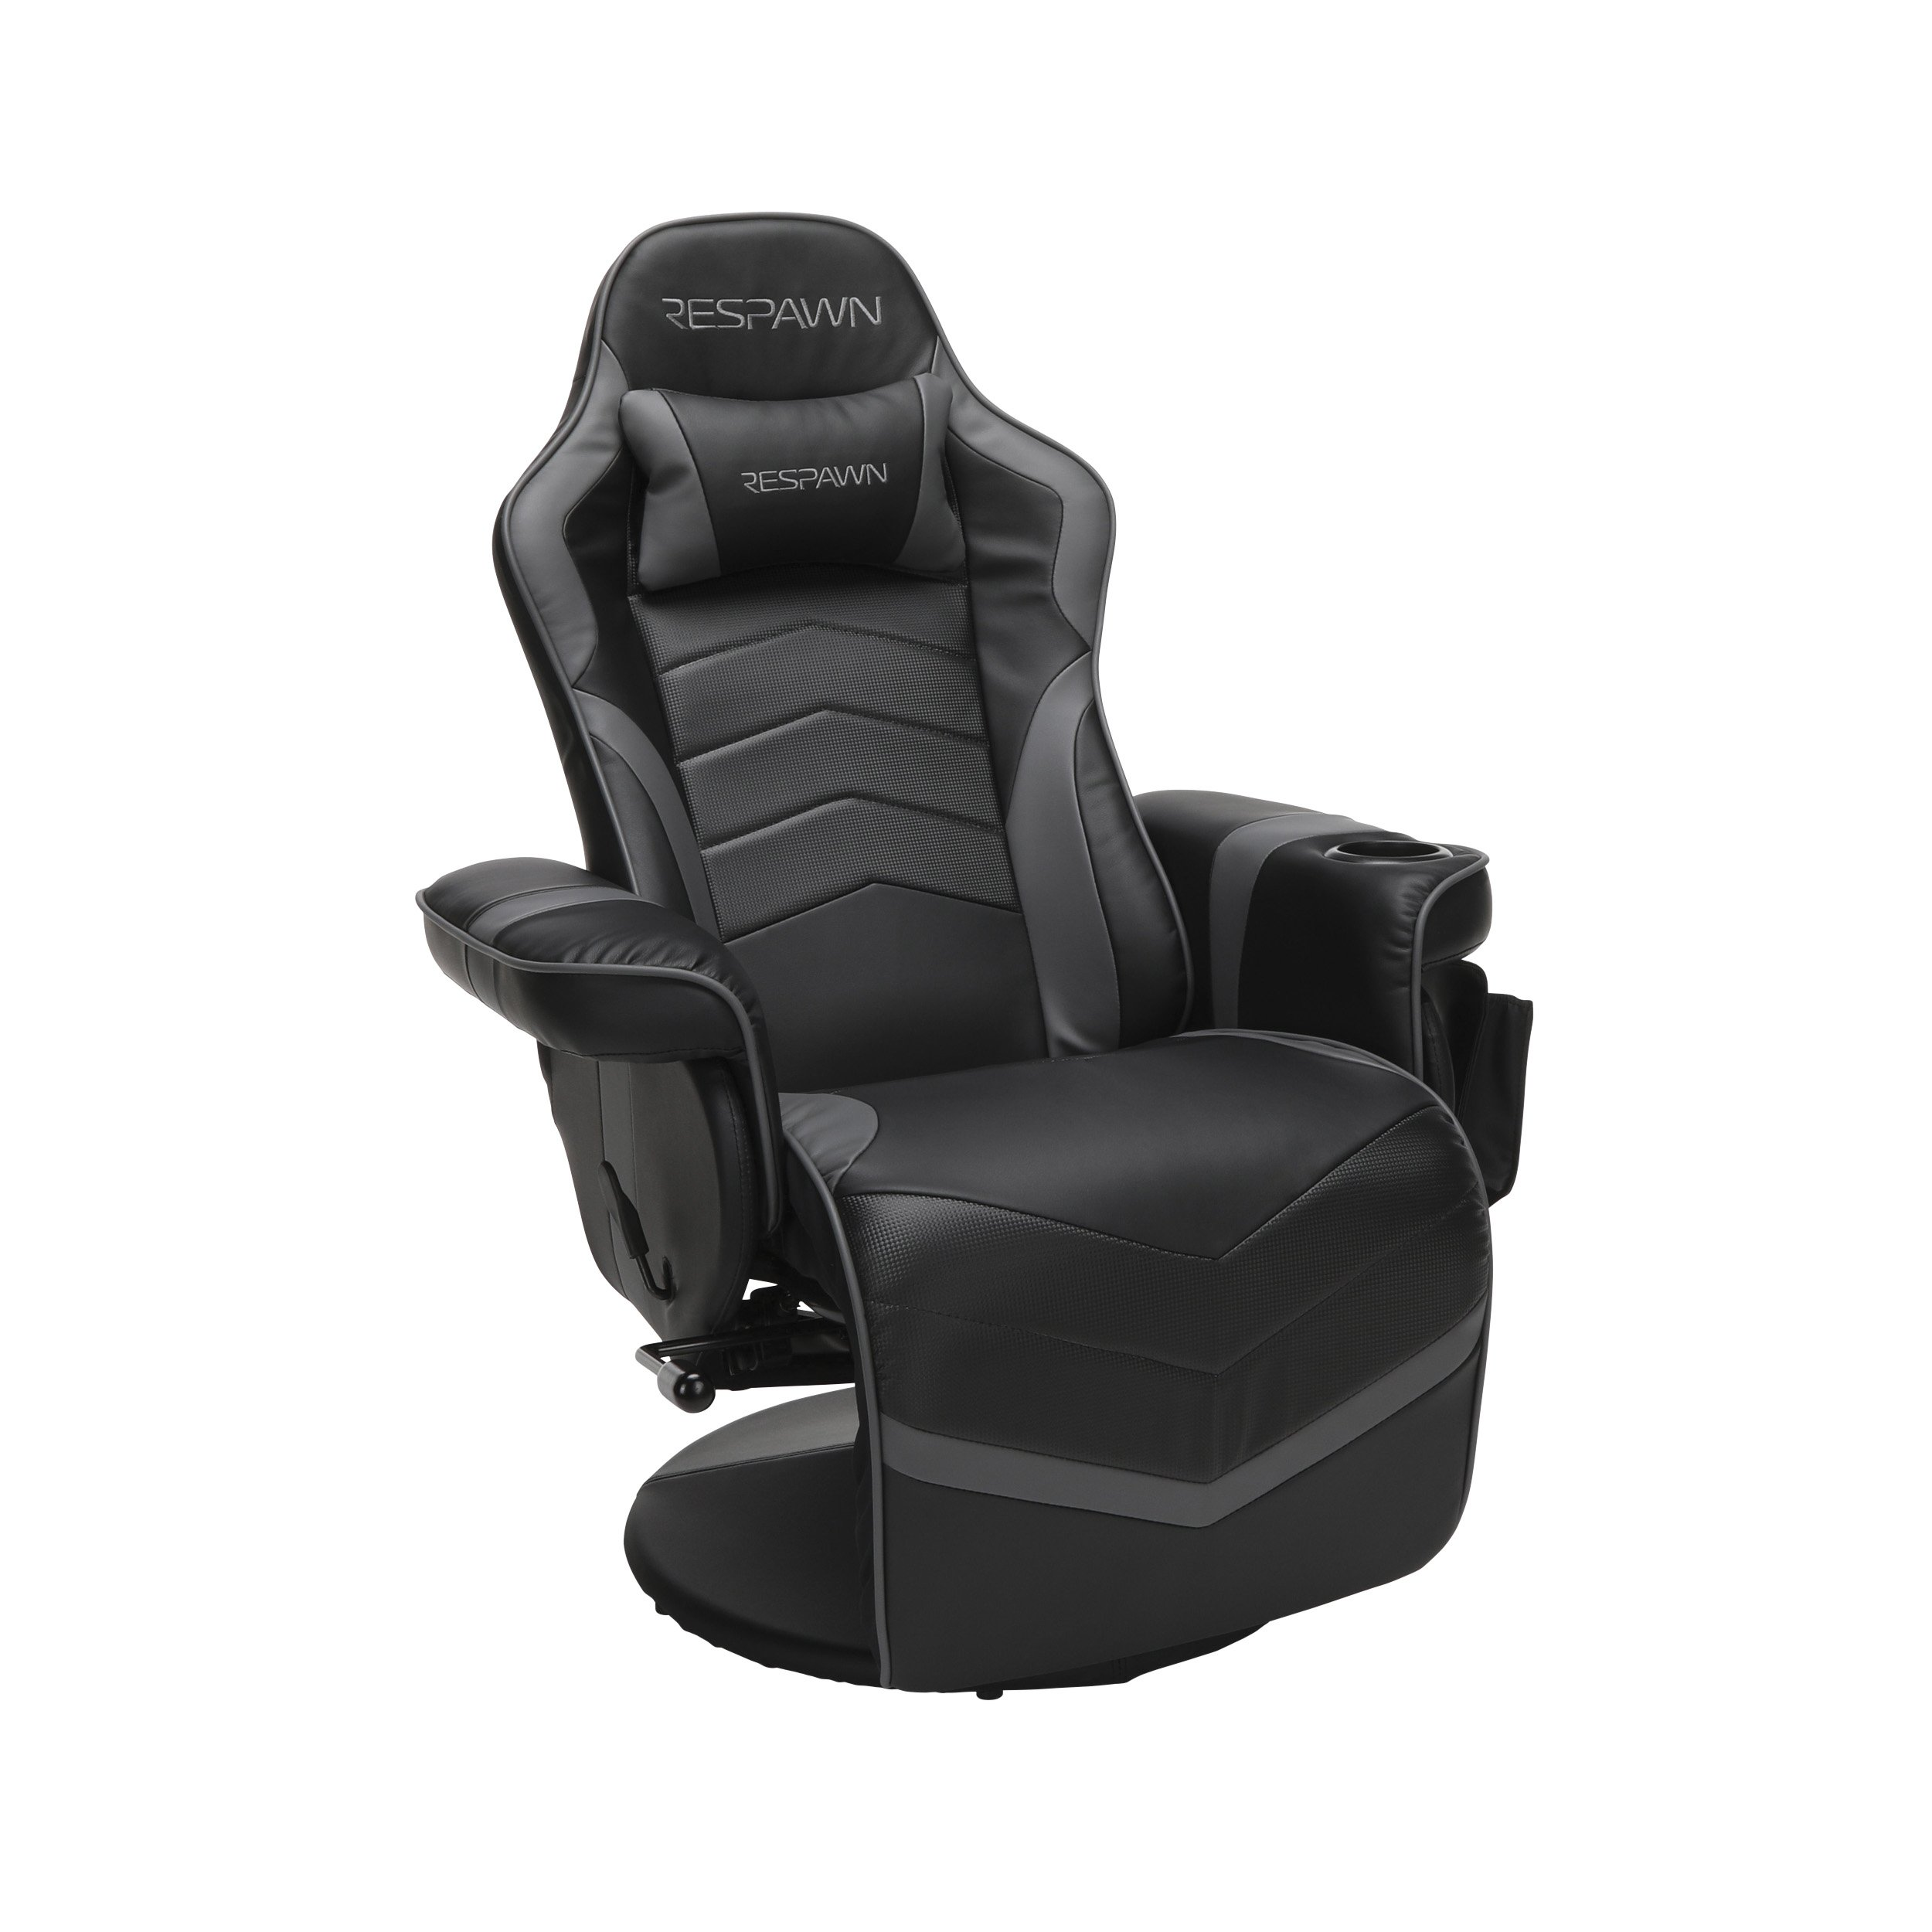 RESPAWN900 Gaming Recliner Gaming chair, Chair, Recliner